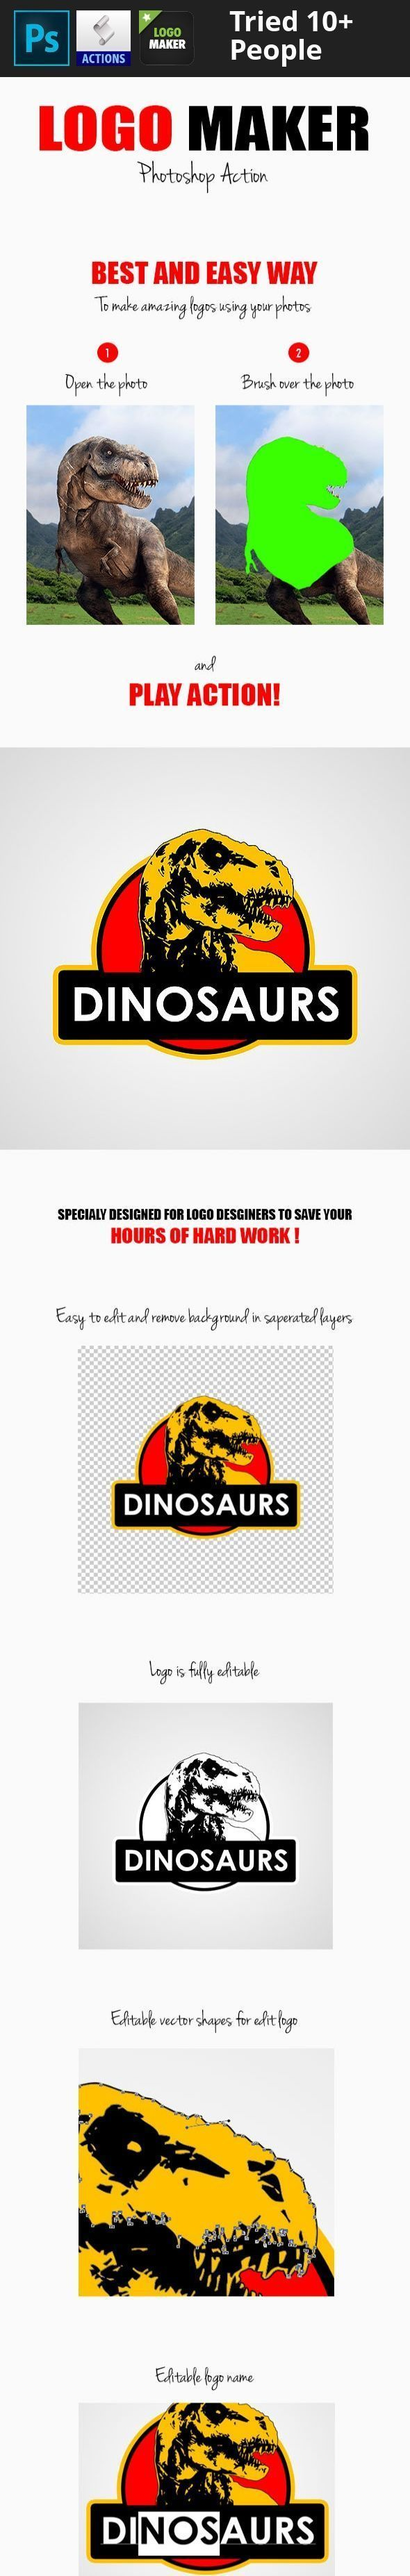 Best 25 how to create logo ideas on pinterest create a business action atn attraction auto best blur clear color digital electric glow gradient graphicriver hdr image logo maker paint painting buycottarizona